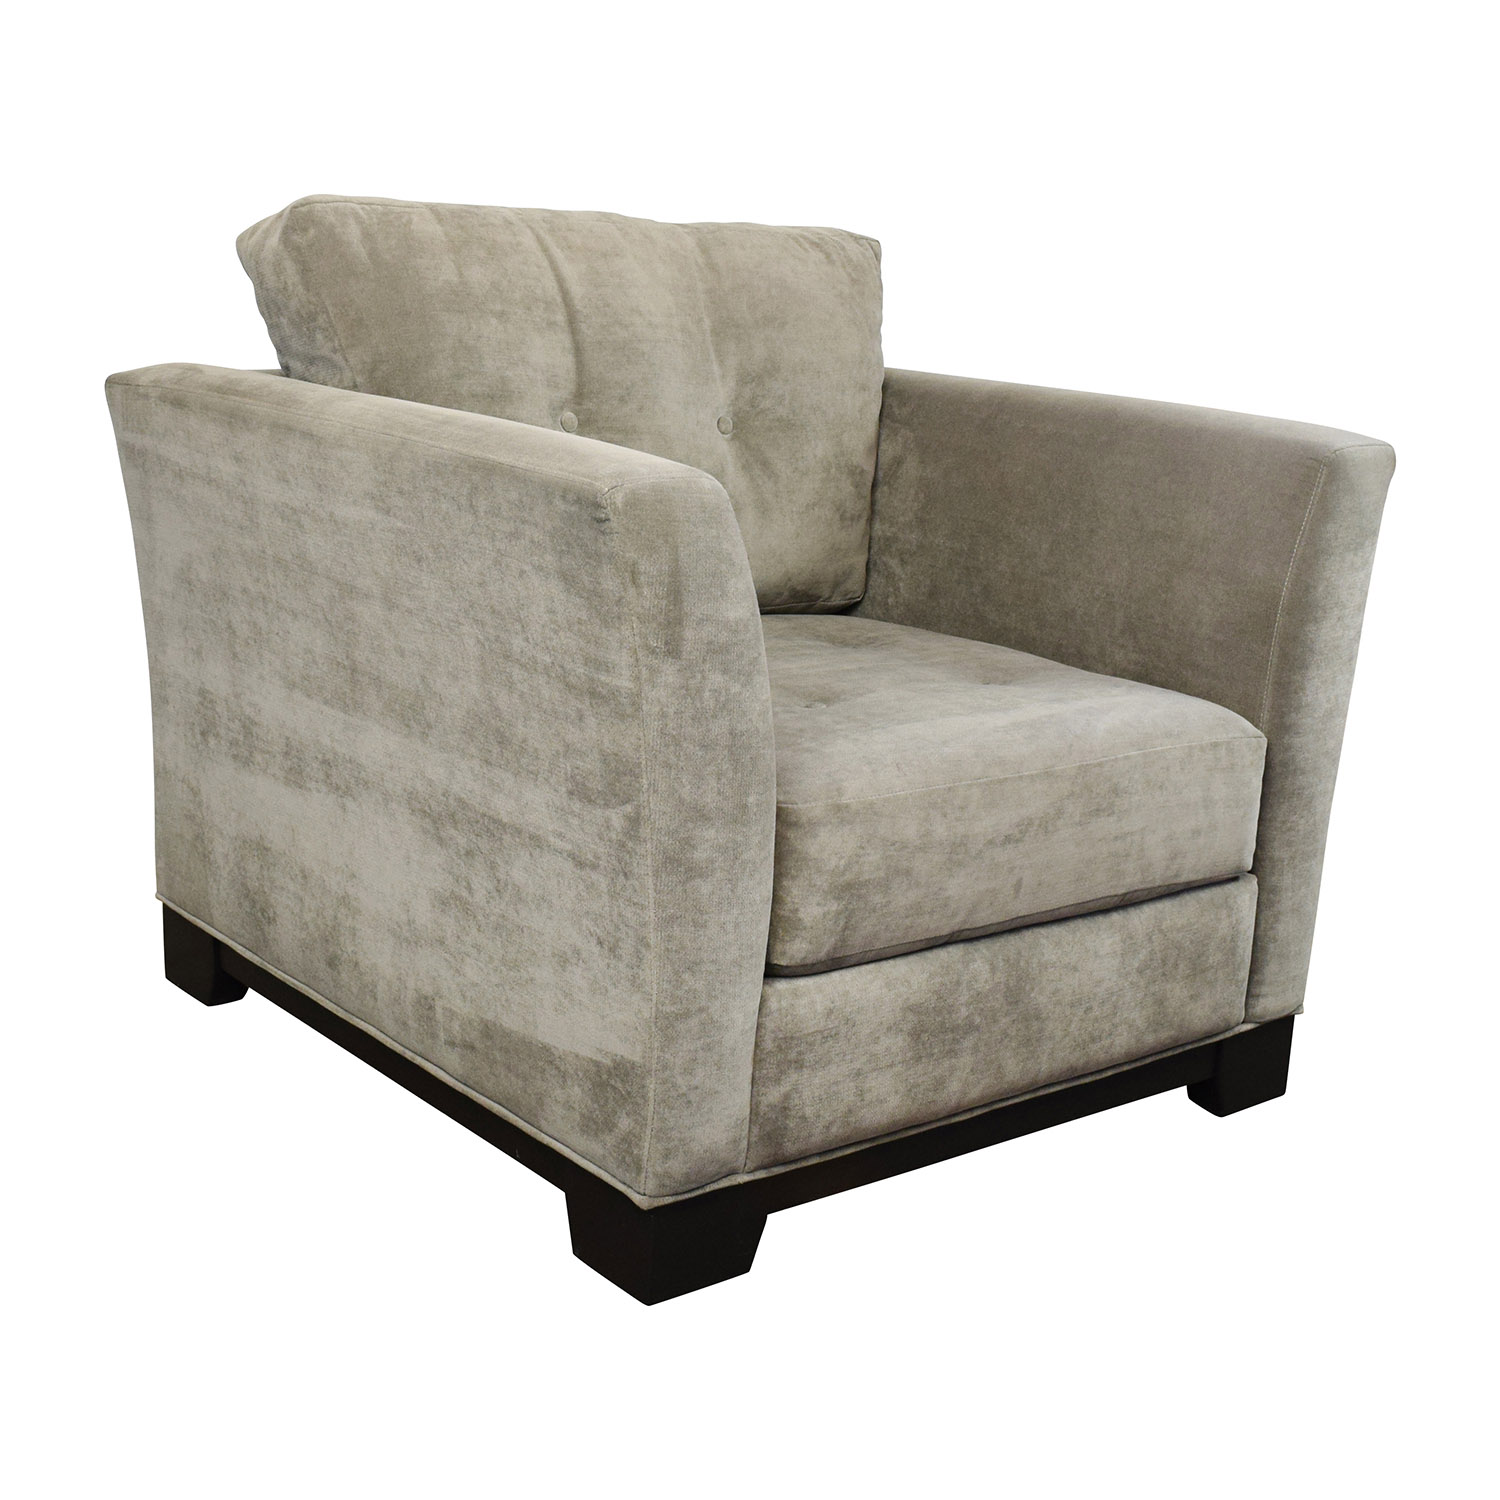 Macys Furniture Department: Macy's Macy's Grey Tufted Arm Chair / Chairs